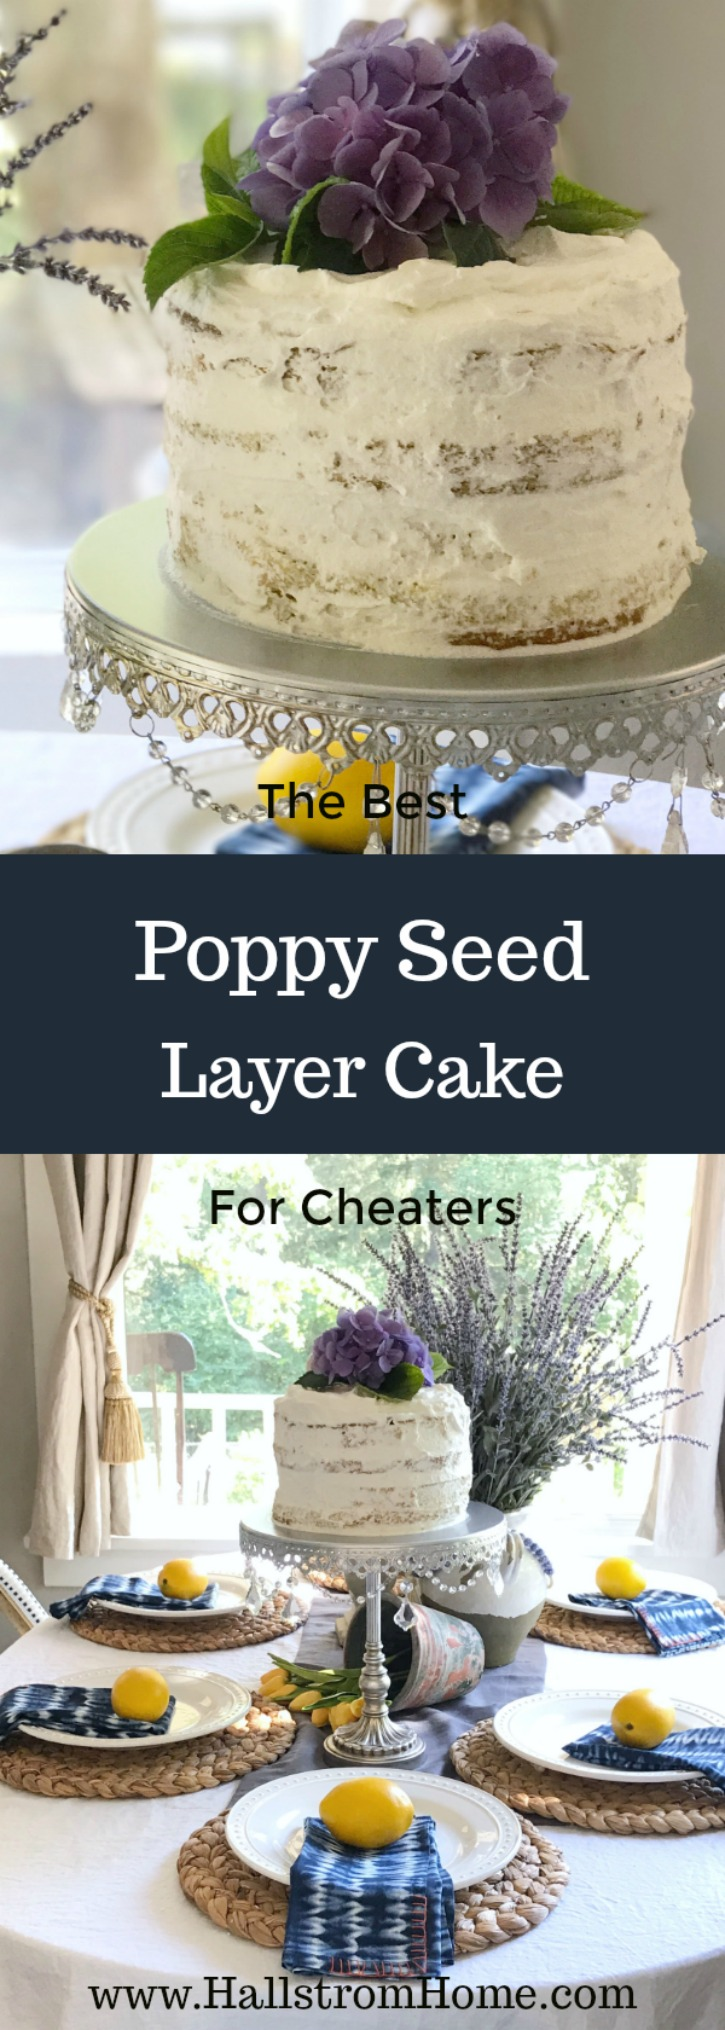 The Best Poppy Seed Layer Cake for Cheaters | cake mix hack for lemon poppy seed cake | Muffin mix for making cakes | Easy to make. | Spring birthday , baby shower, Easter cake ideas | Hallstromhome.com